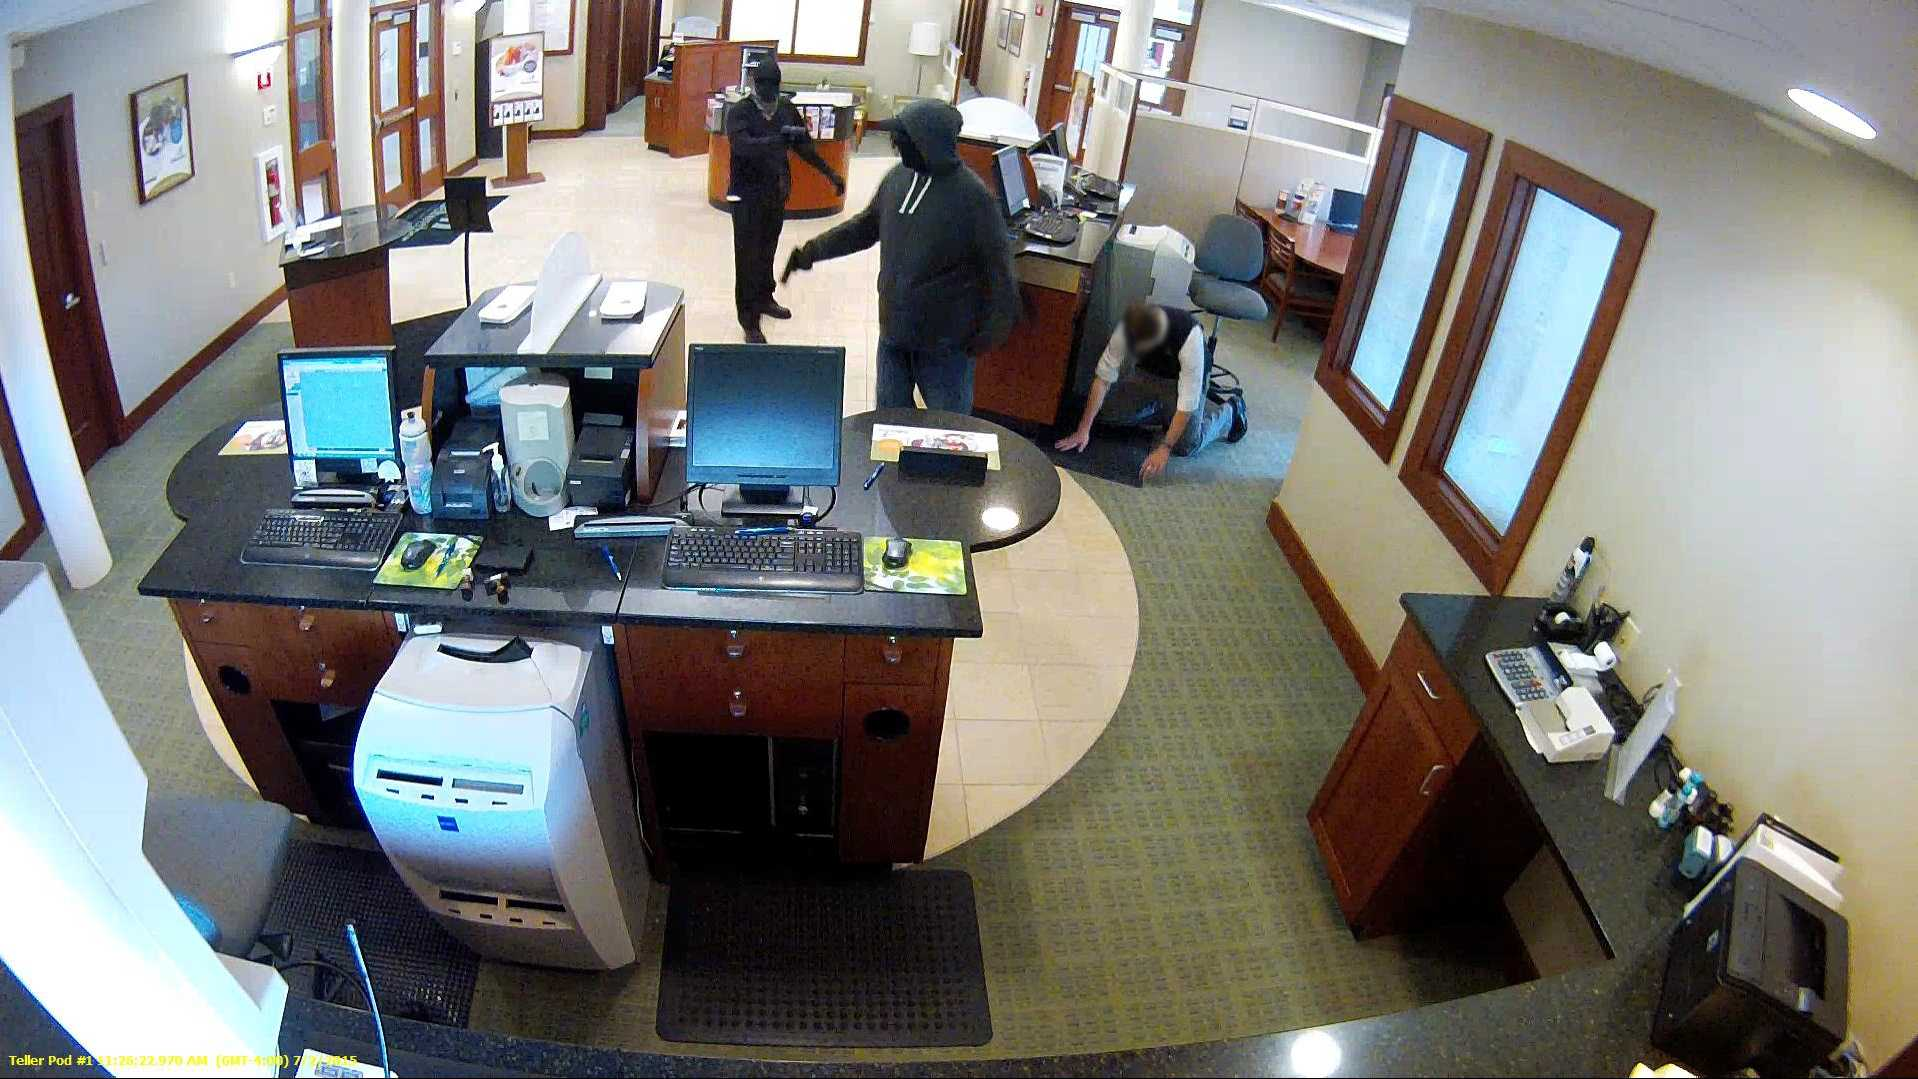 Police said two masked men were armed when they robbed the Bellwether Community Credit Union in Nashua on Friday, July 2.